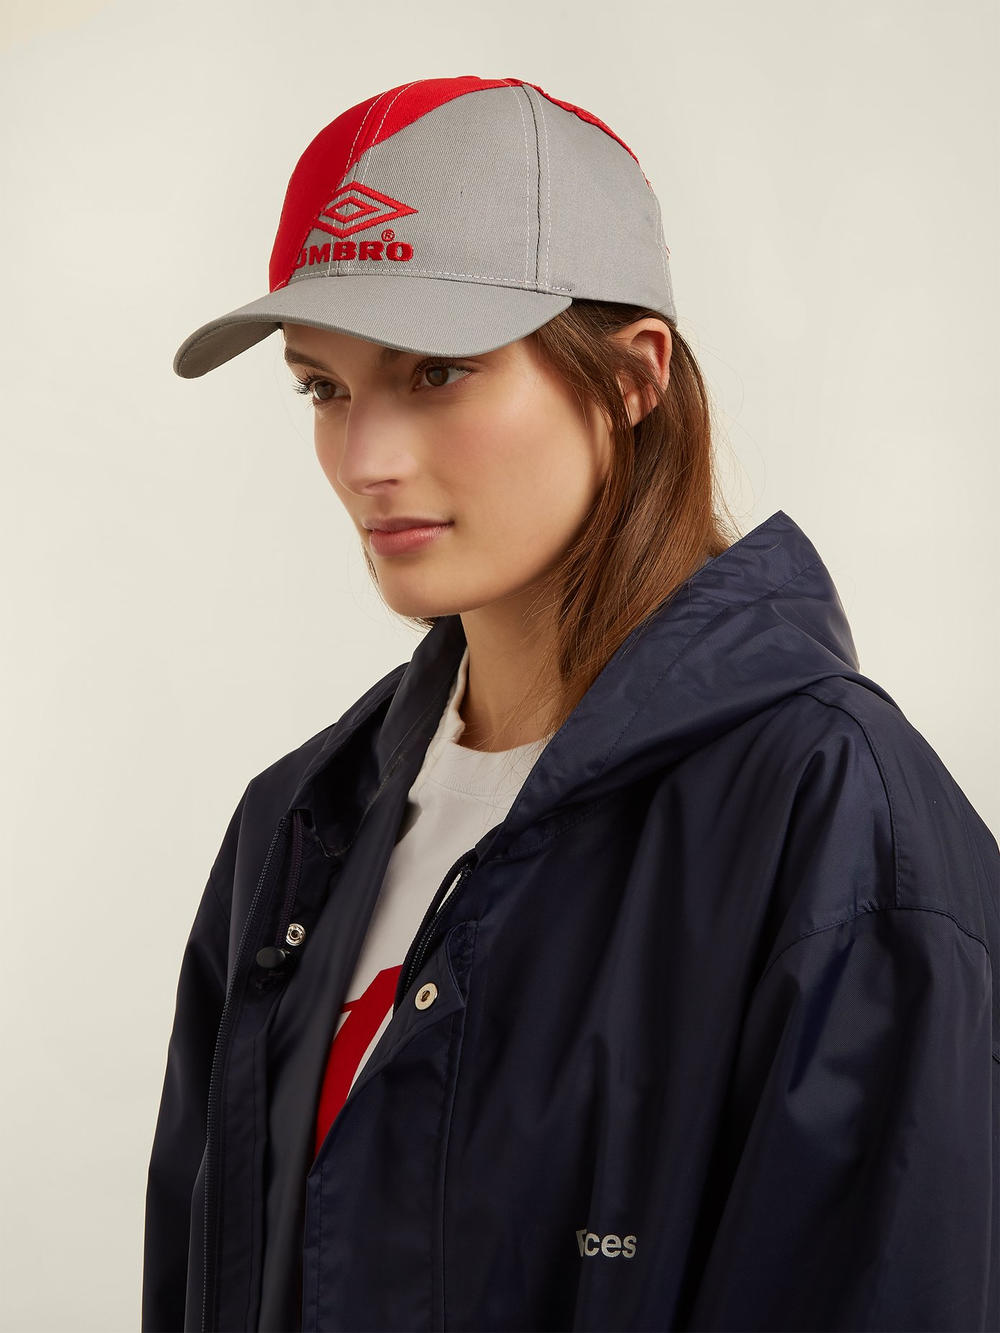 Vetements & Umbro Red and Grey Baseball Cap Demna Gvasalia Sportwear